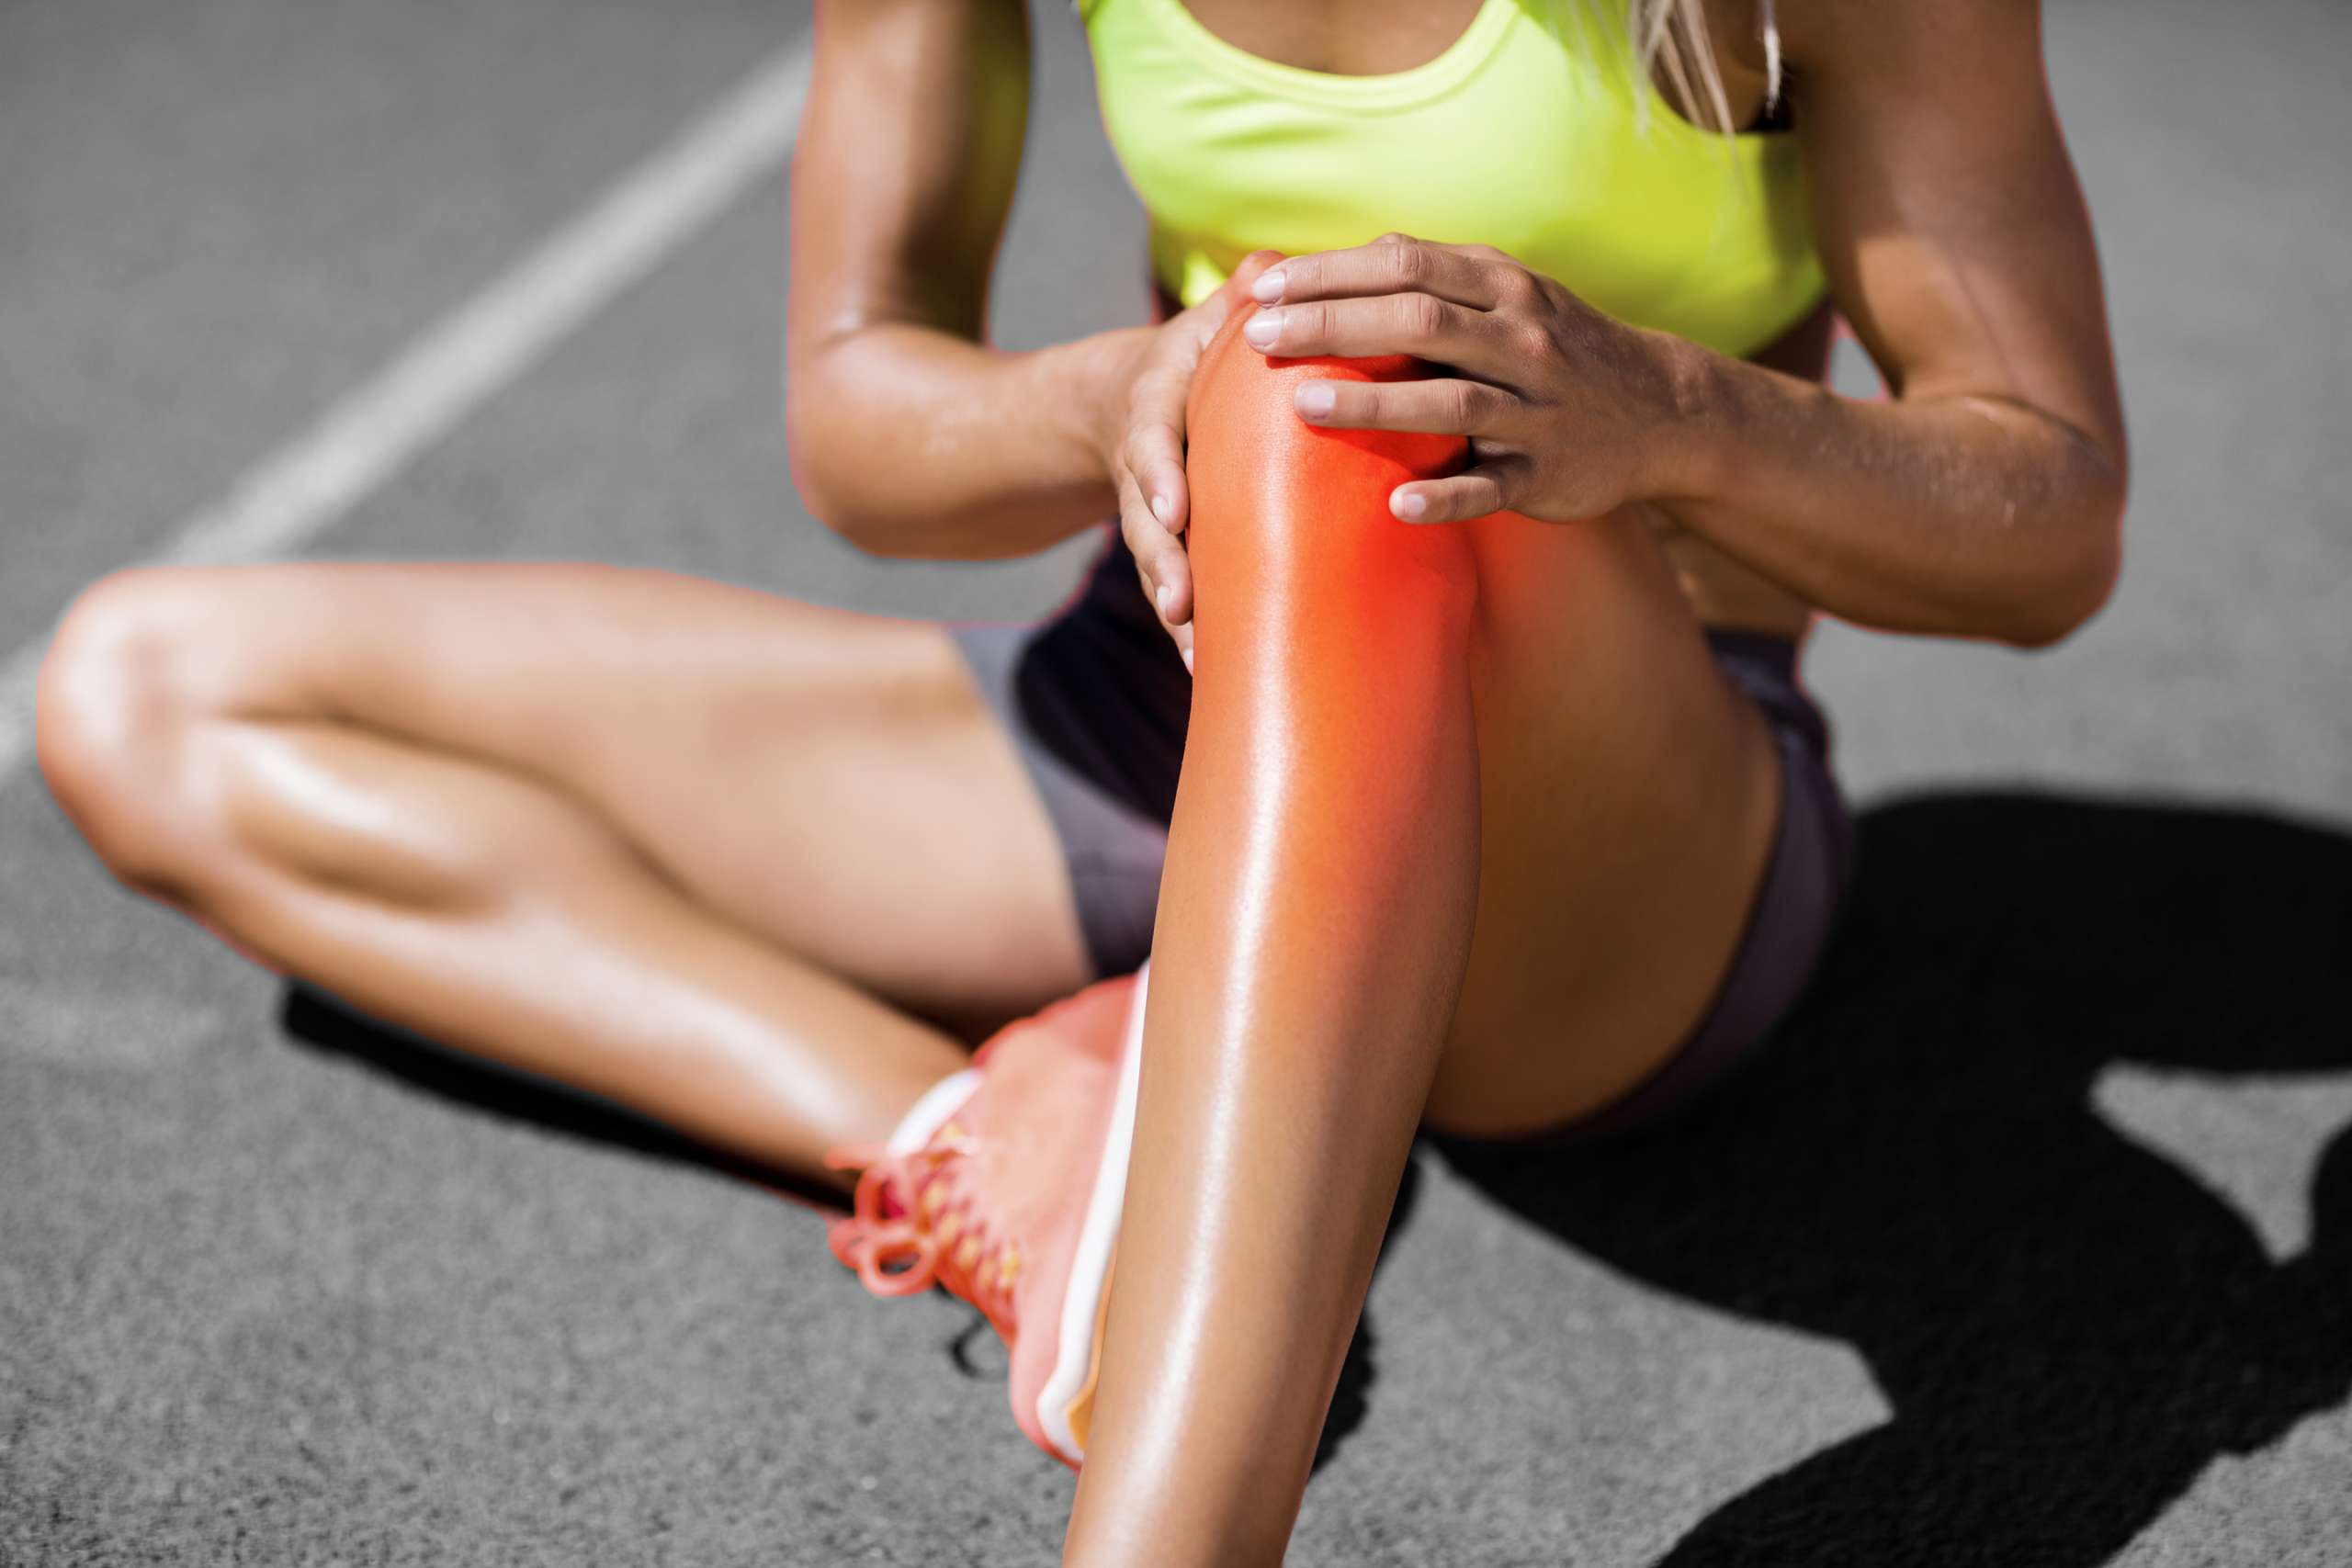 A photograph of a female athlete holding their knee, in pain,to depict the injury and problems following anterior cruciate ligament surgery that our client experienced